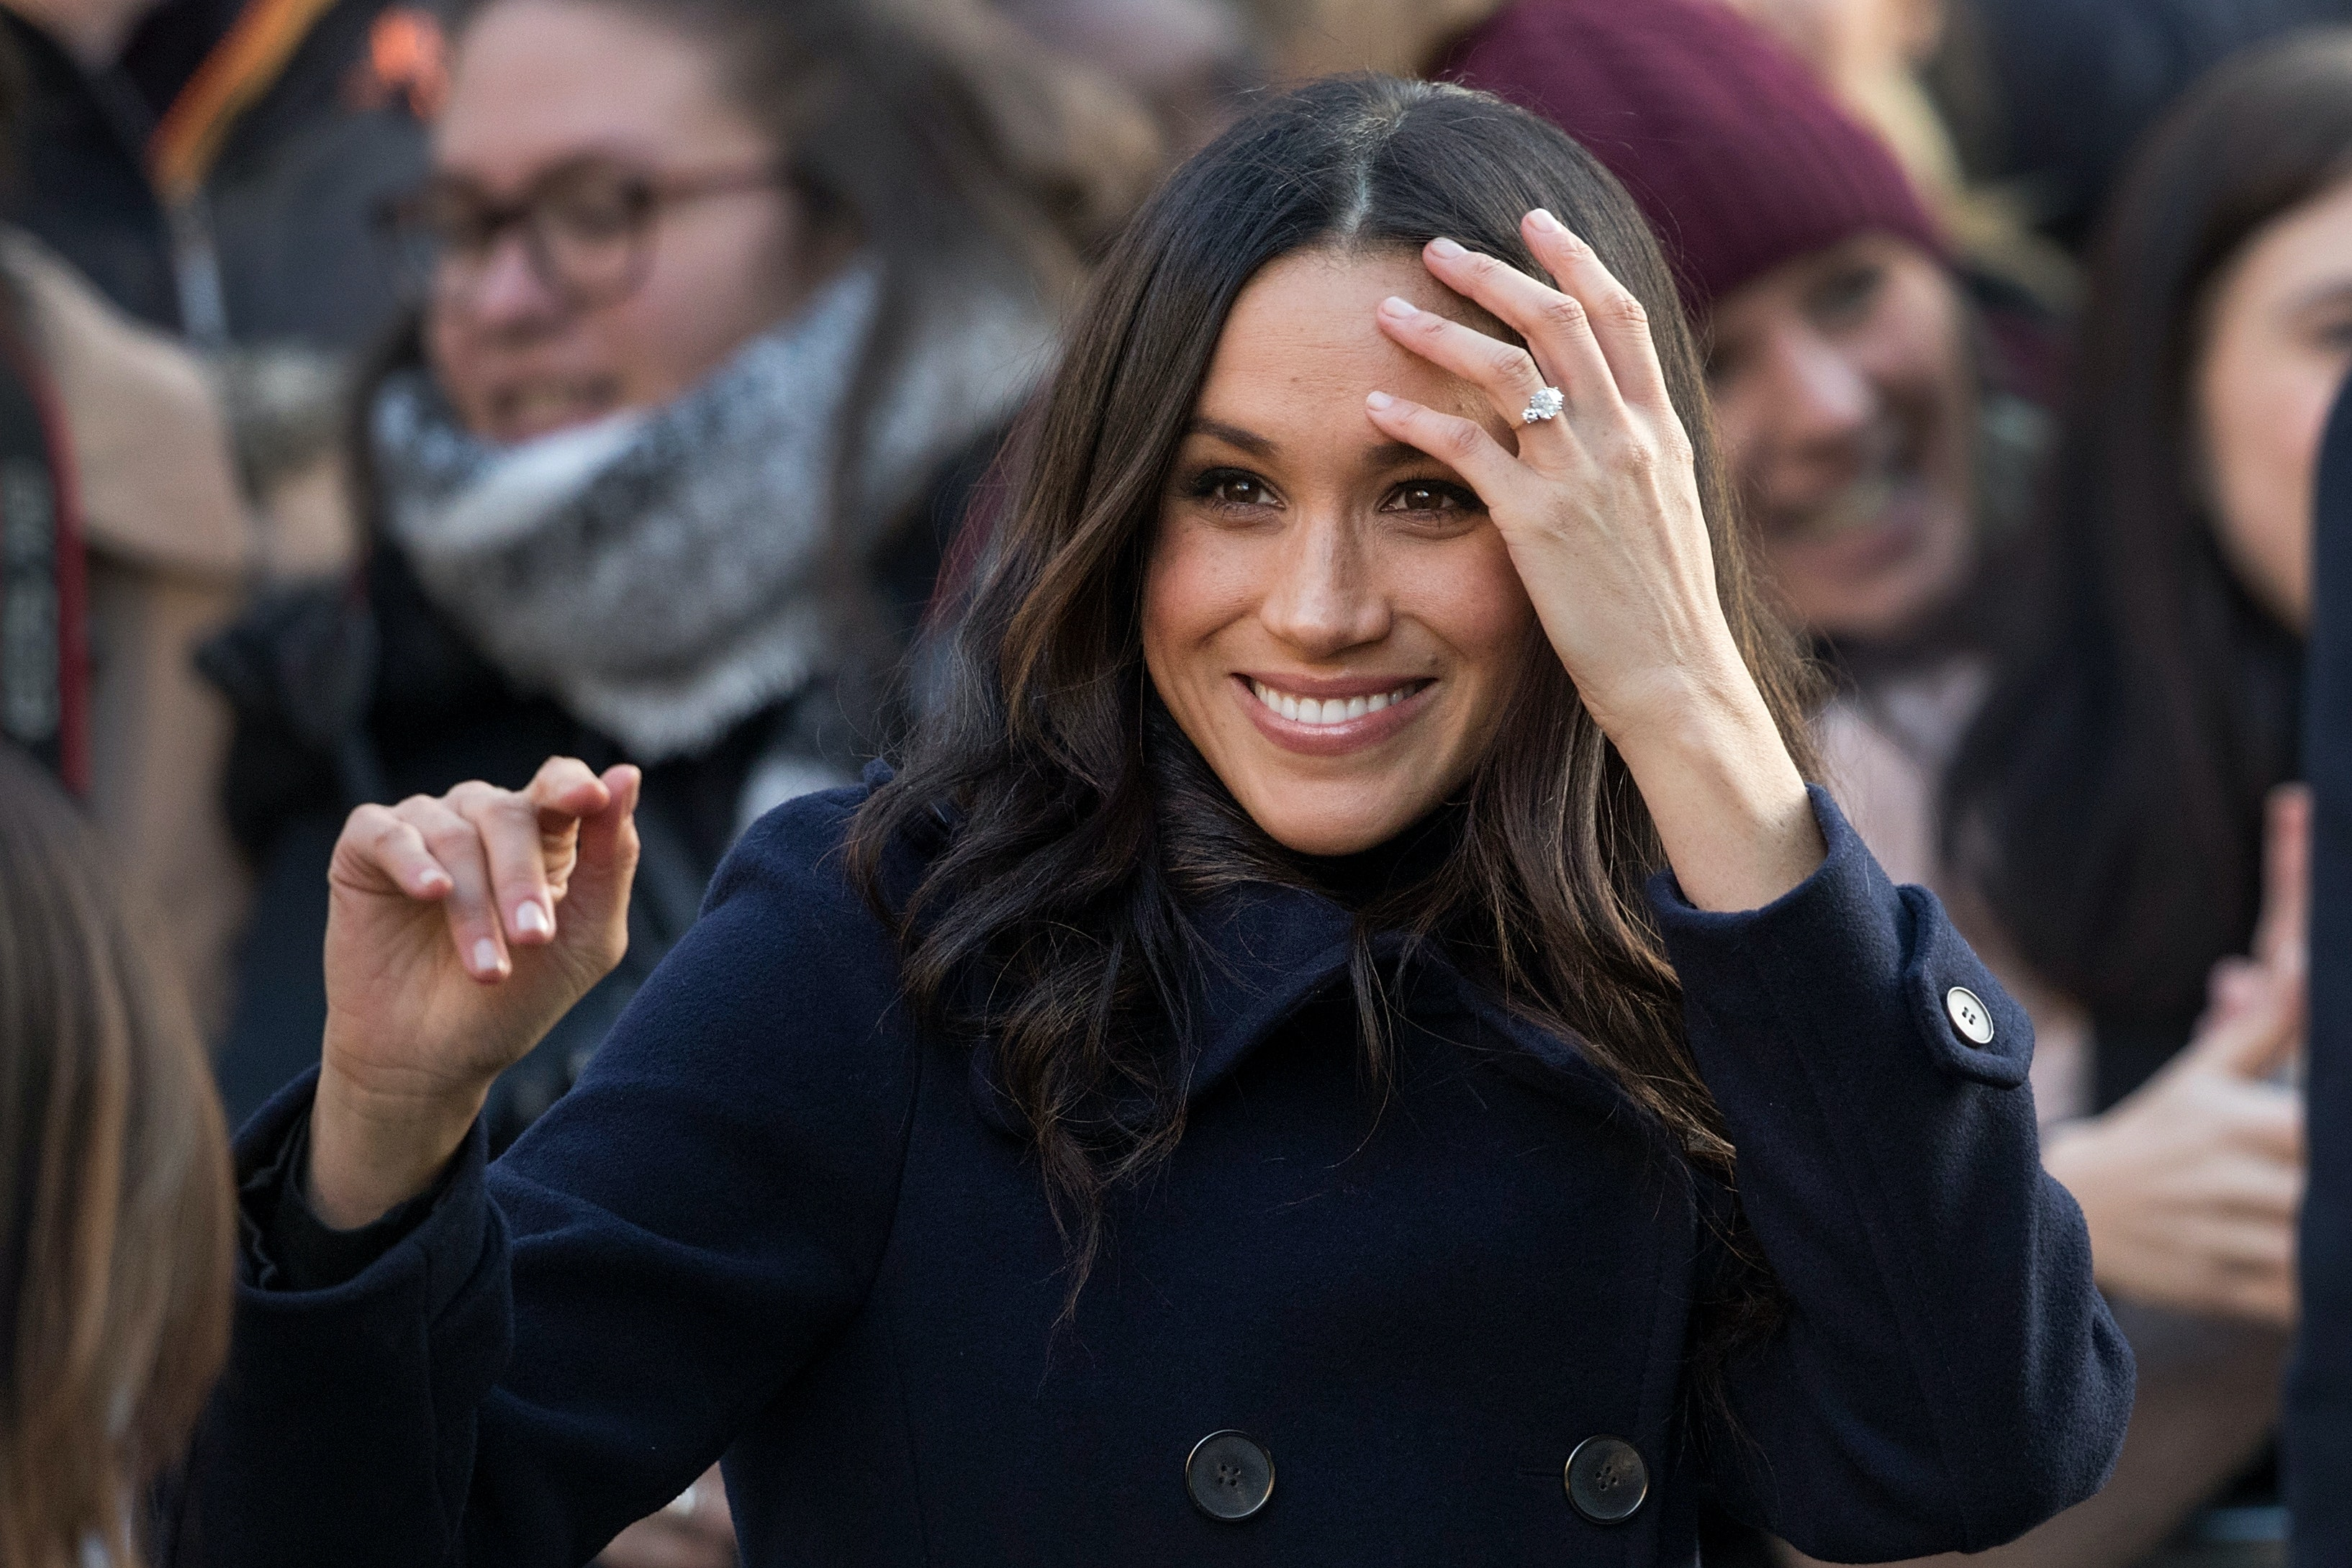 Princess 'Pushy' accused of insulting Meghan Markle with racist brooch